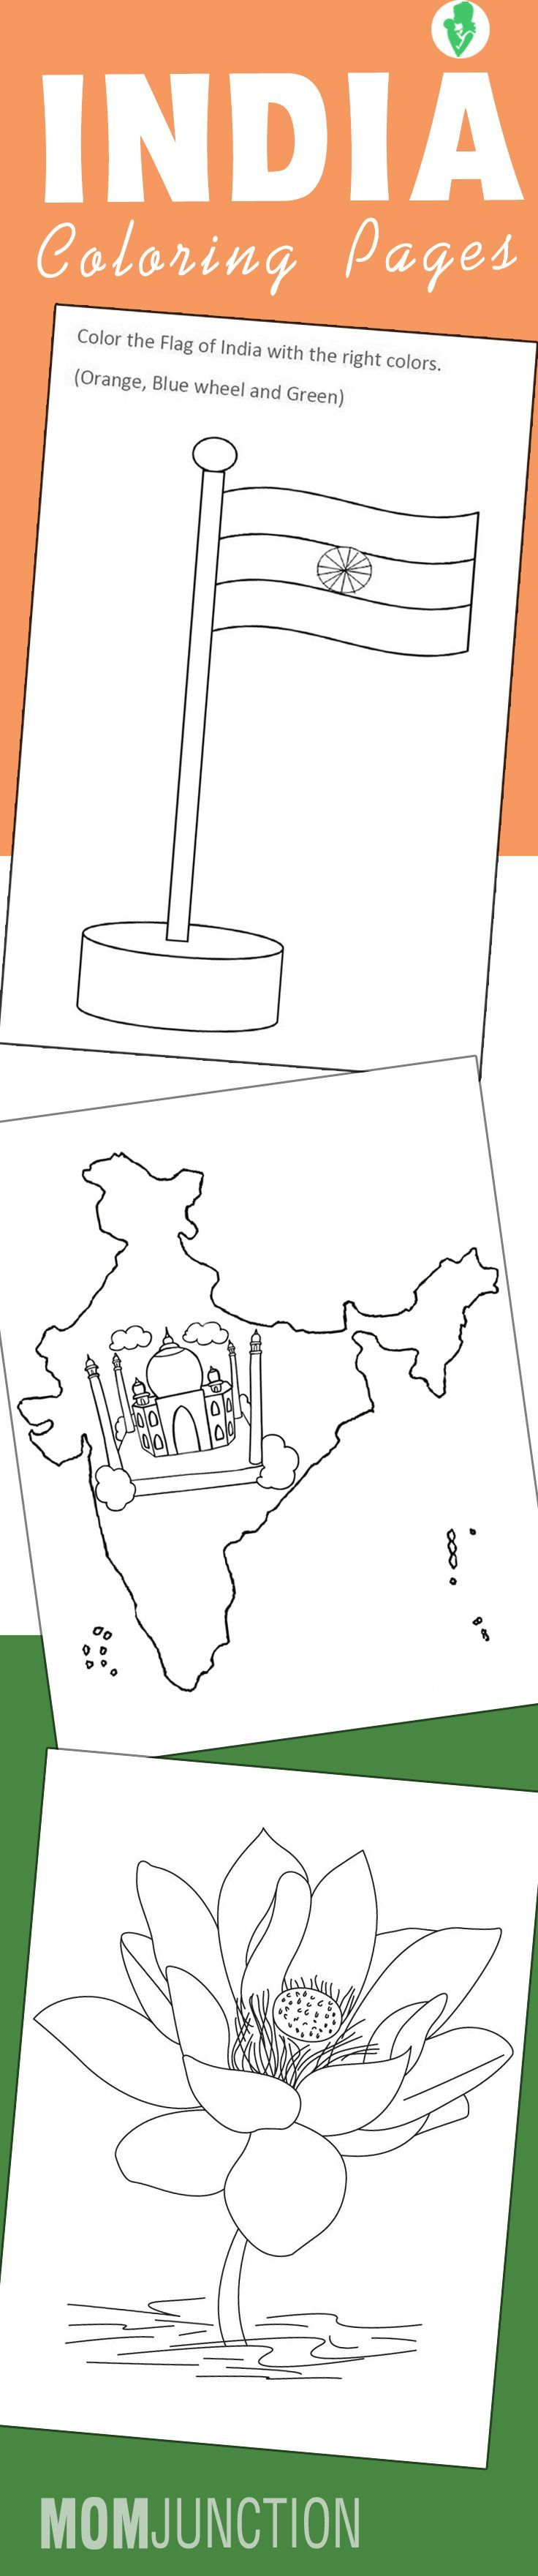 coloring pages about india - photo#34